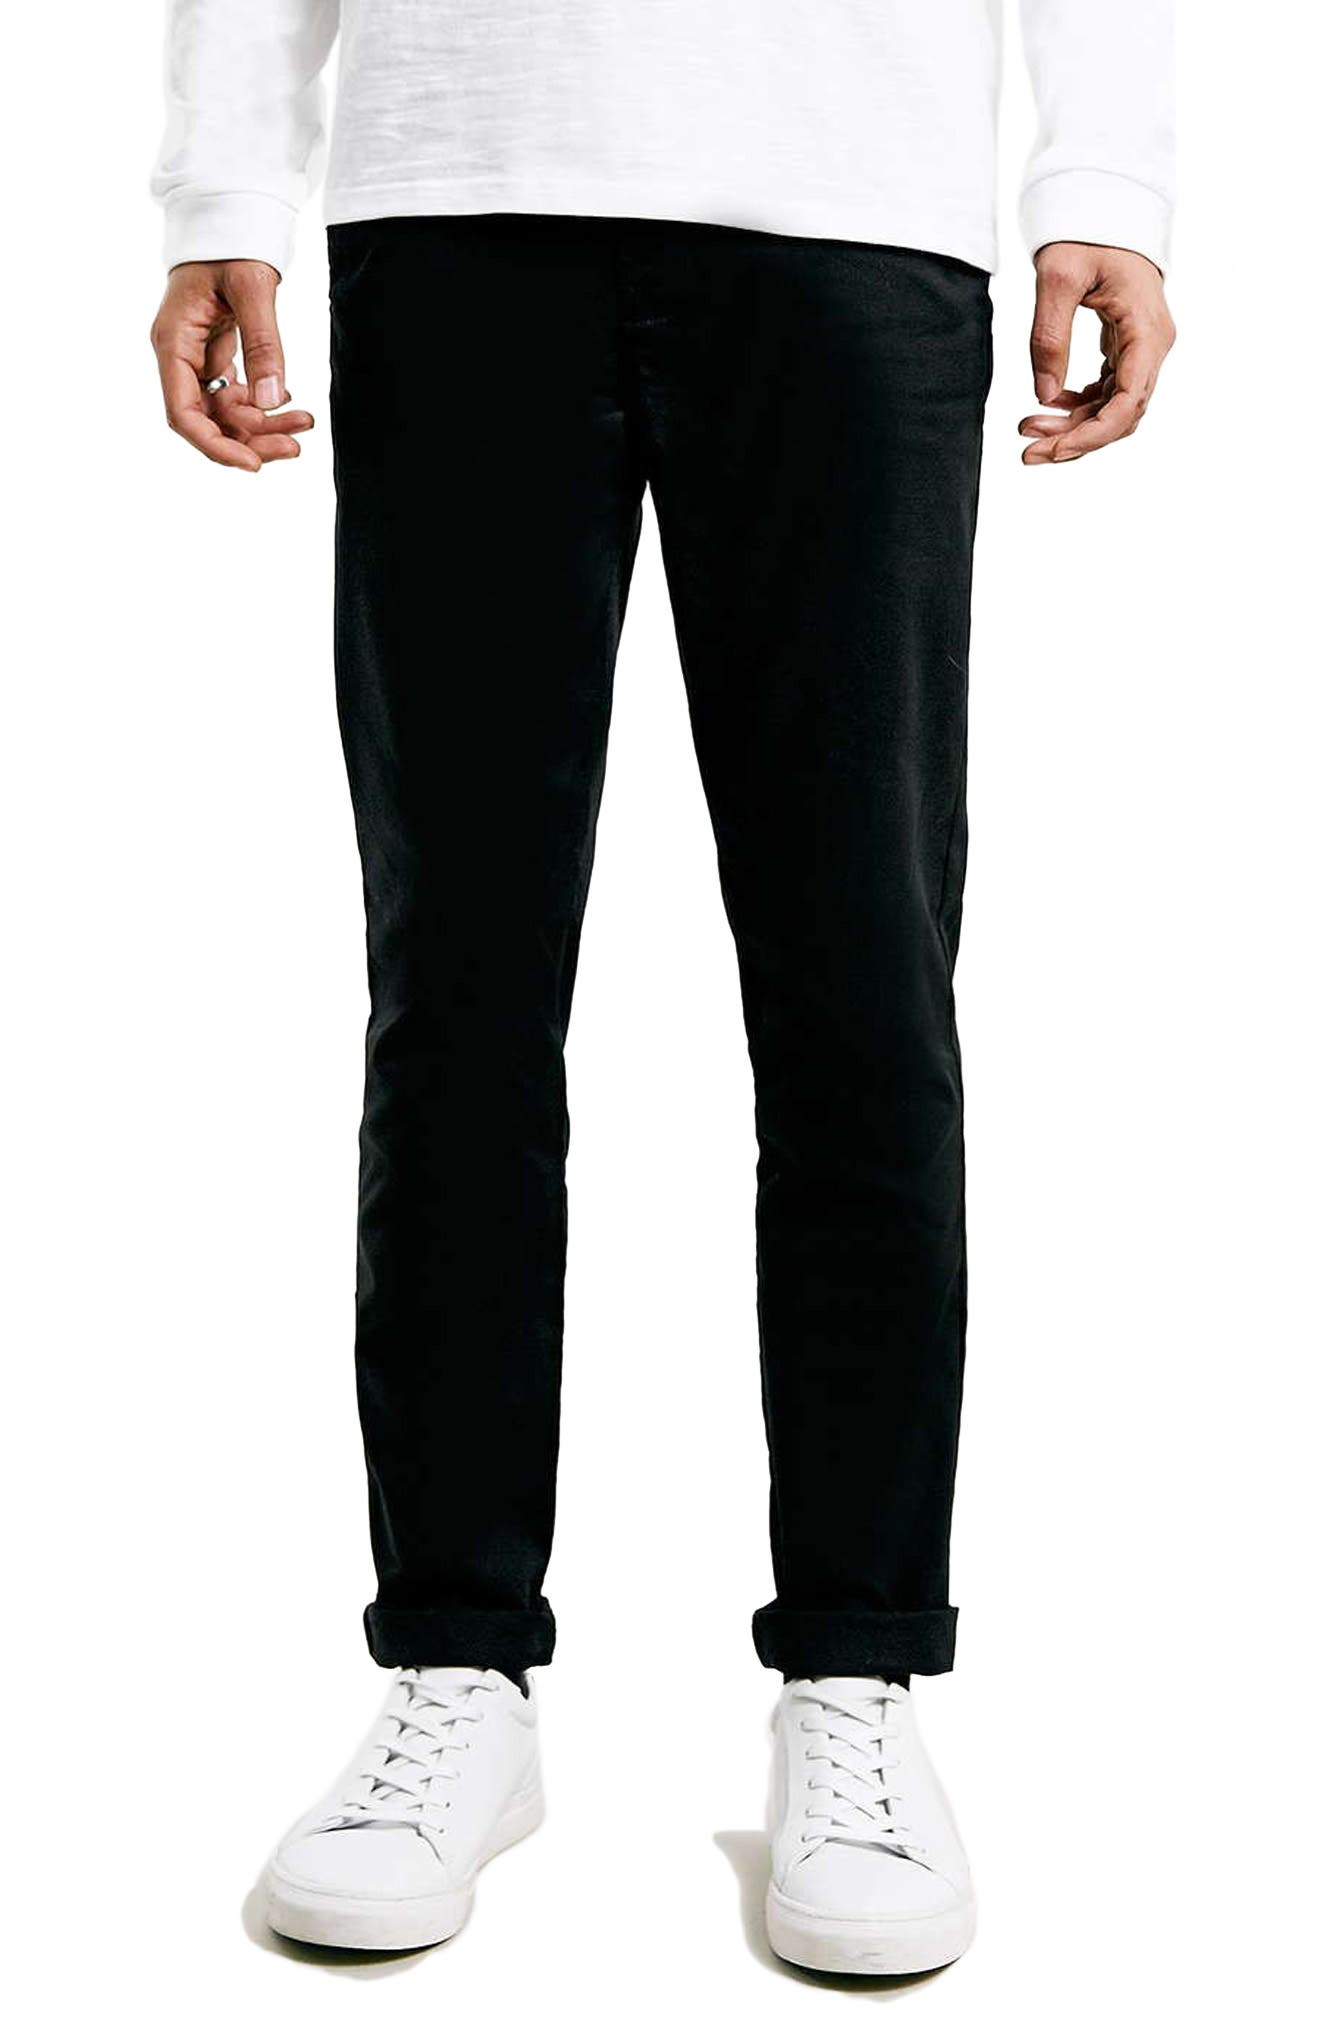 Stretch Skinny Fit Chinos,                             Main thumbnail 1, color,                             BLACK